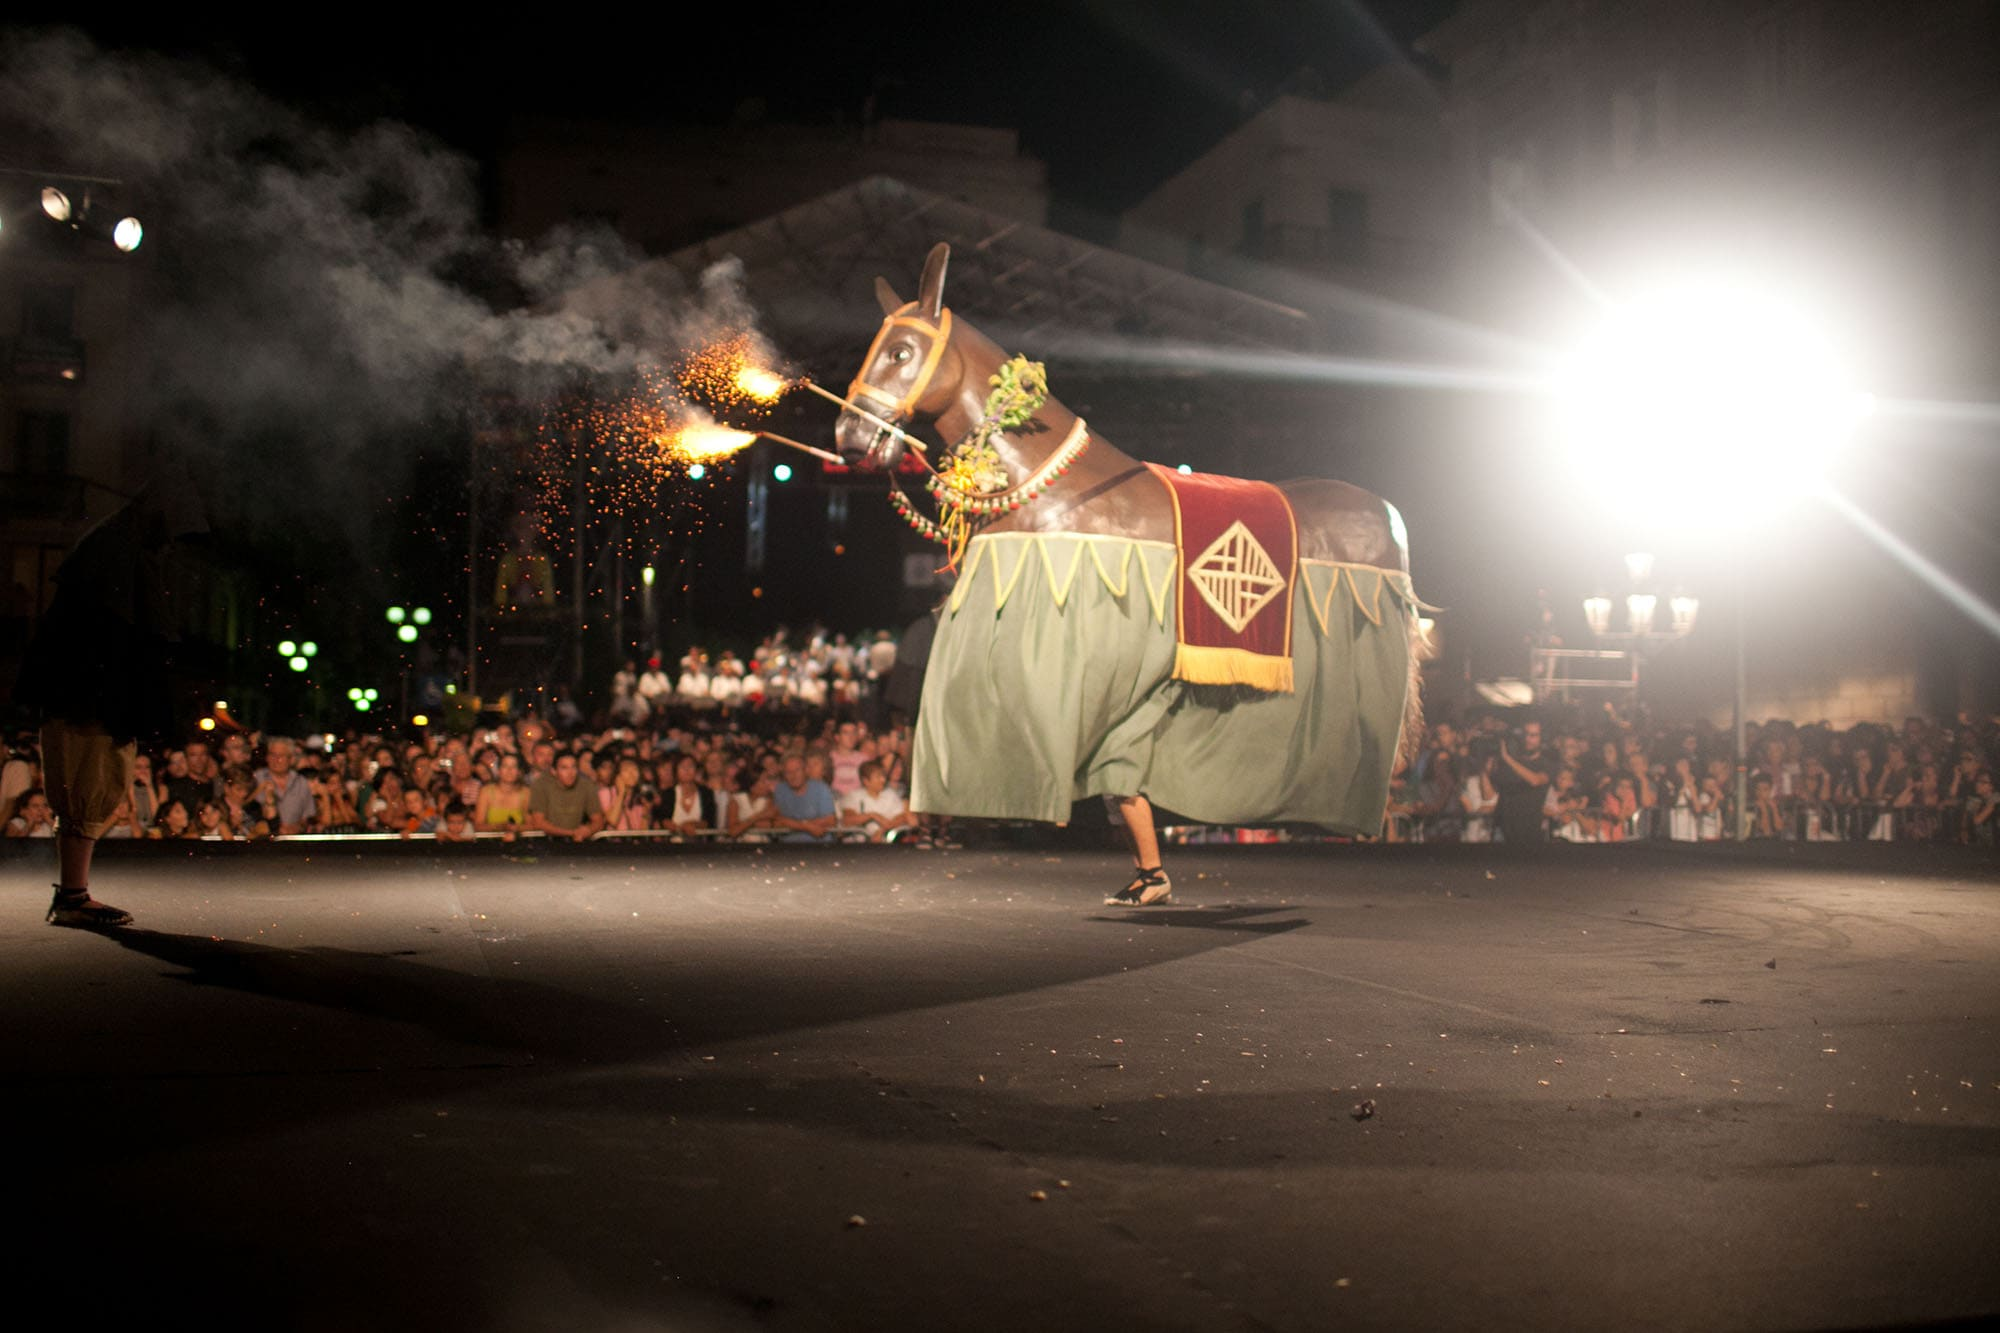 Fire horse at the Opening Ceremony of La Mercè  Festival 2011 in Barcelona, Spain